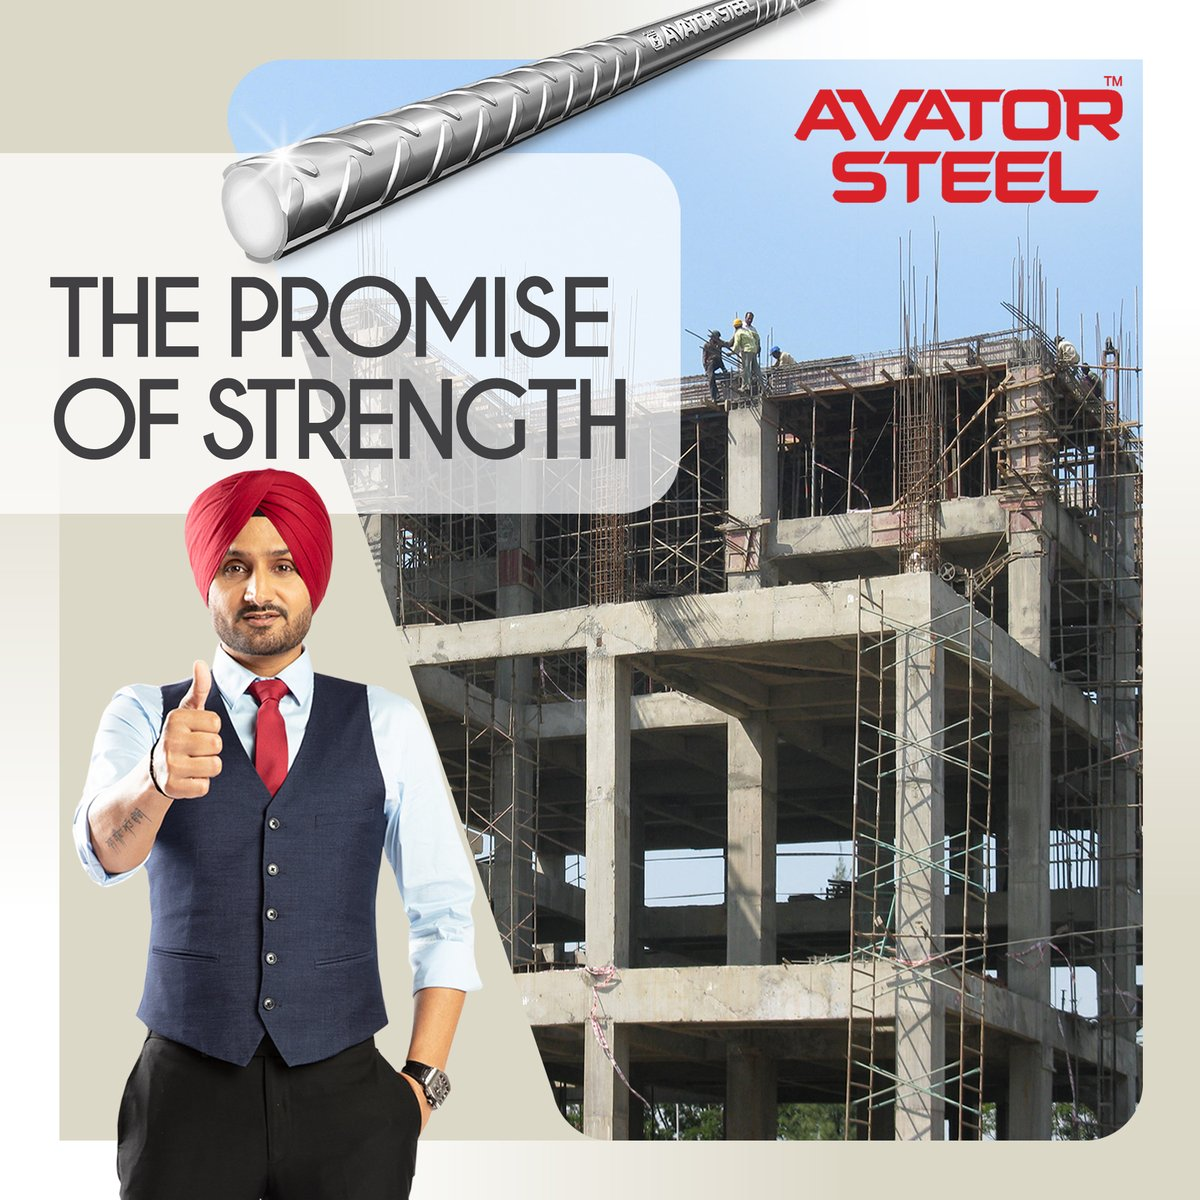 Give your home the ultimate strength to withstand calamities like earthquakes.  Choose always the best, choose #AvatorSteel.   #HarbhajanSingh #Strength #rustproof  @harbhajan_singh